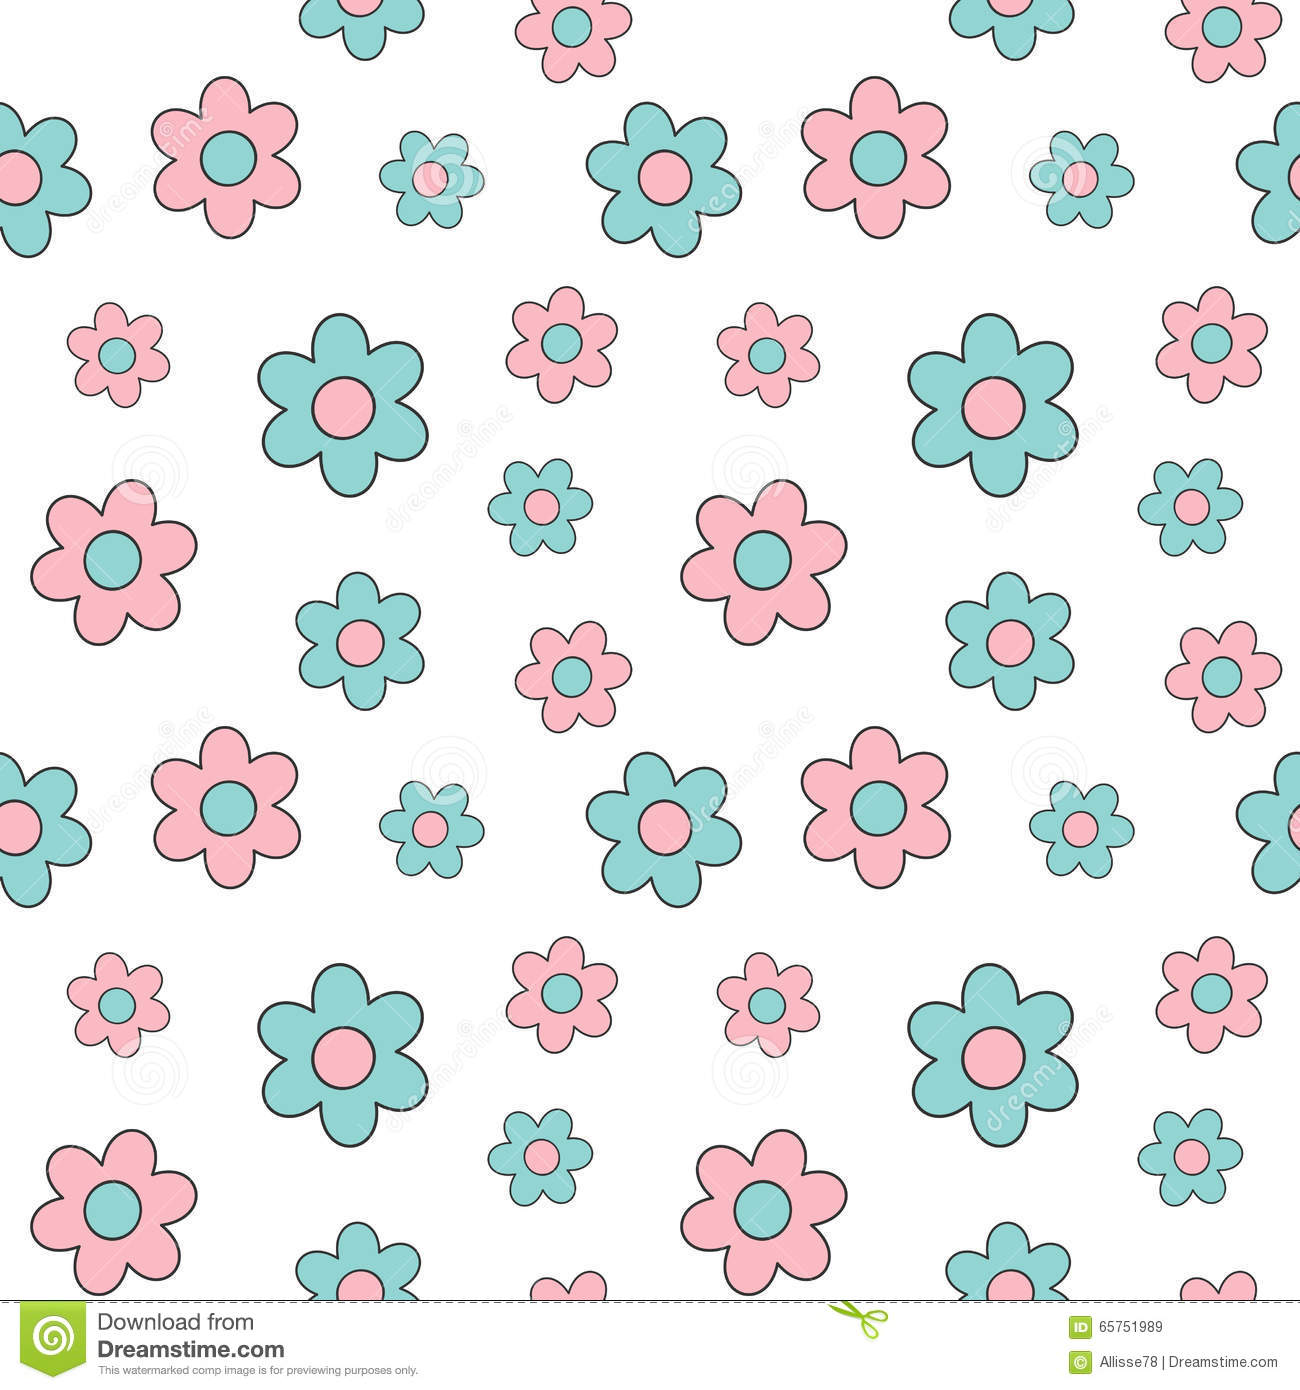 Cute Lovely Pink And Blue Cartoon Daisy Flowers Seamless